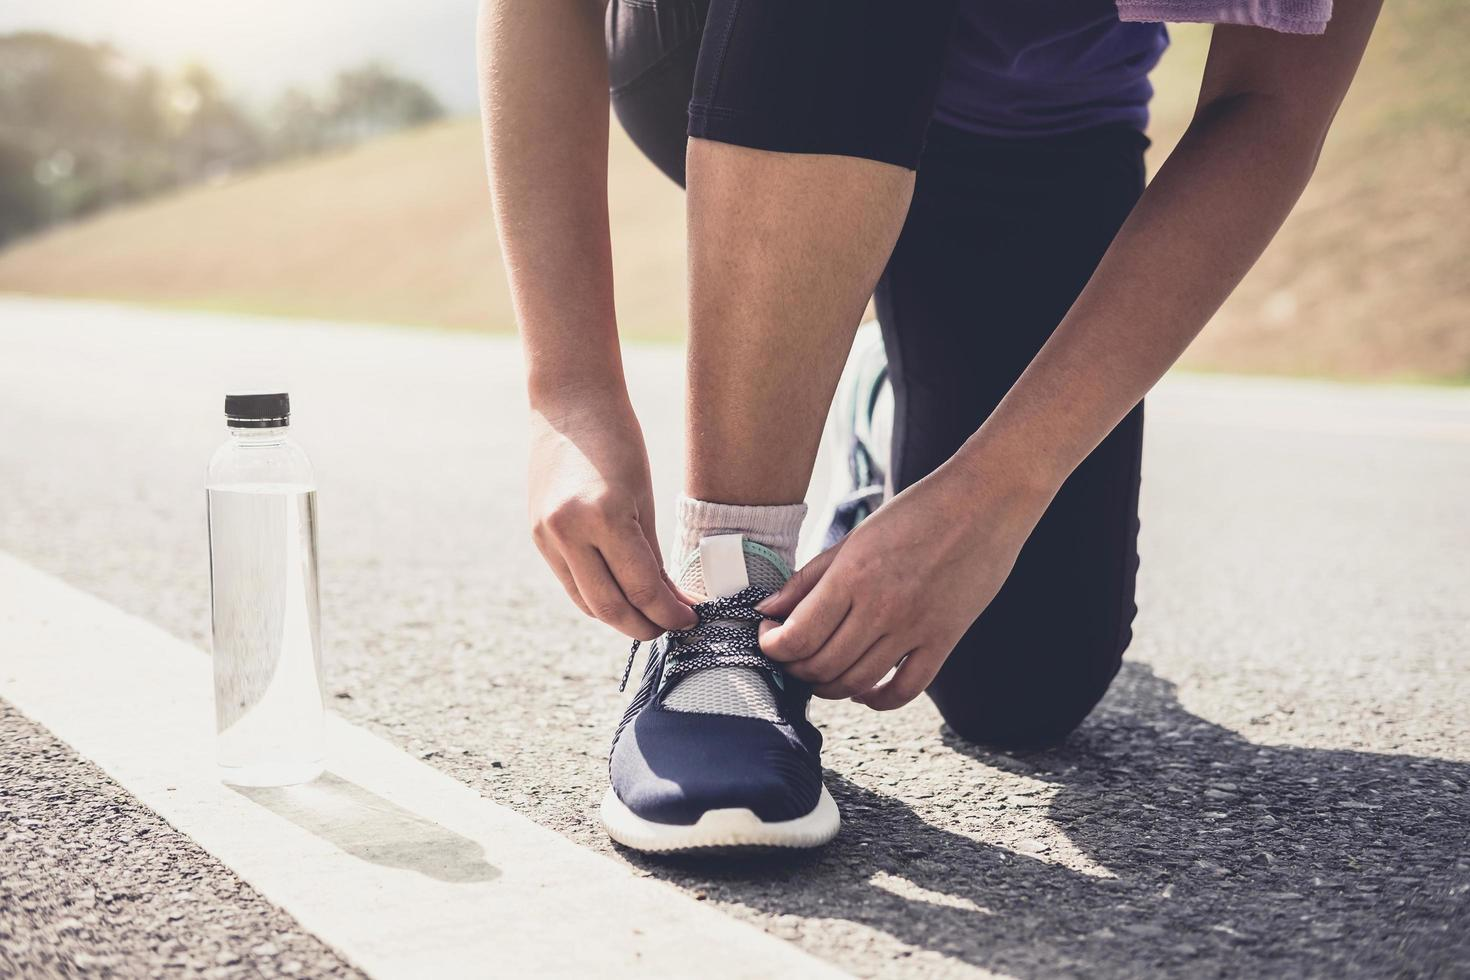 Healthy lifestyle, Runner tying running shoes getting ready for race on run track jog workout wellness concept photo